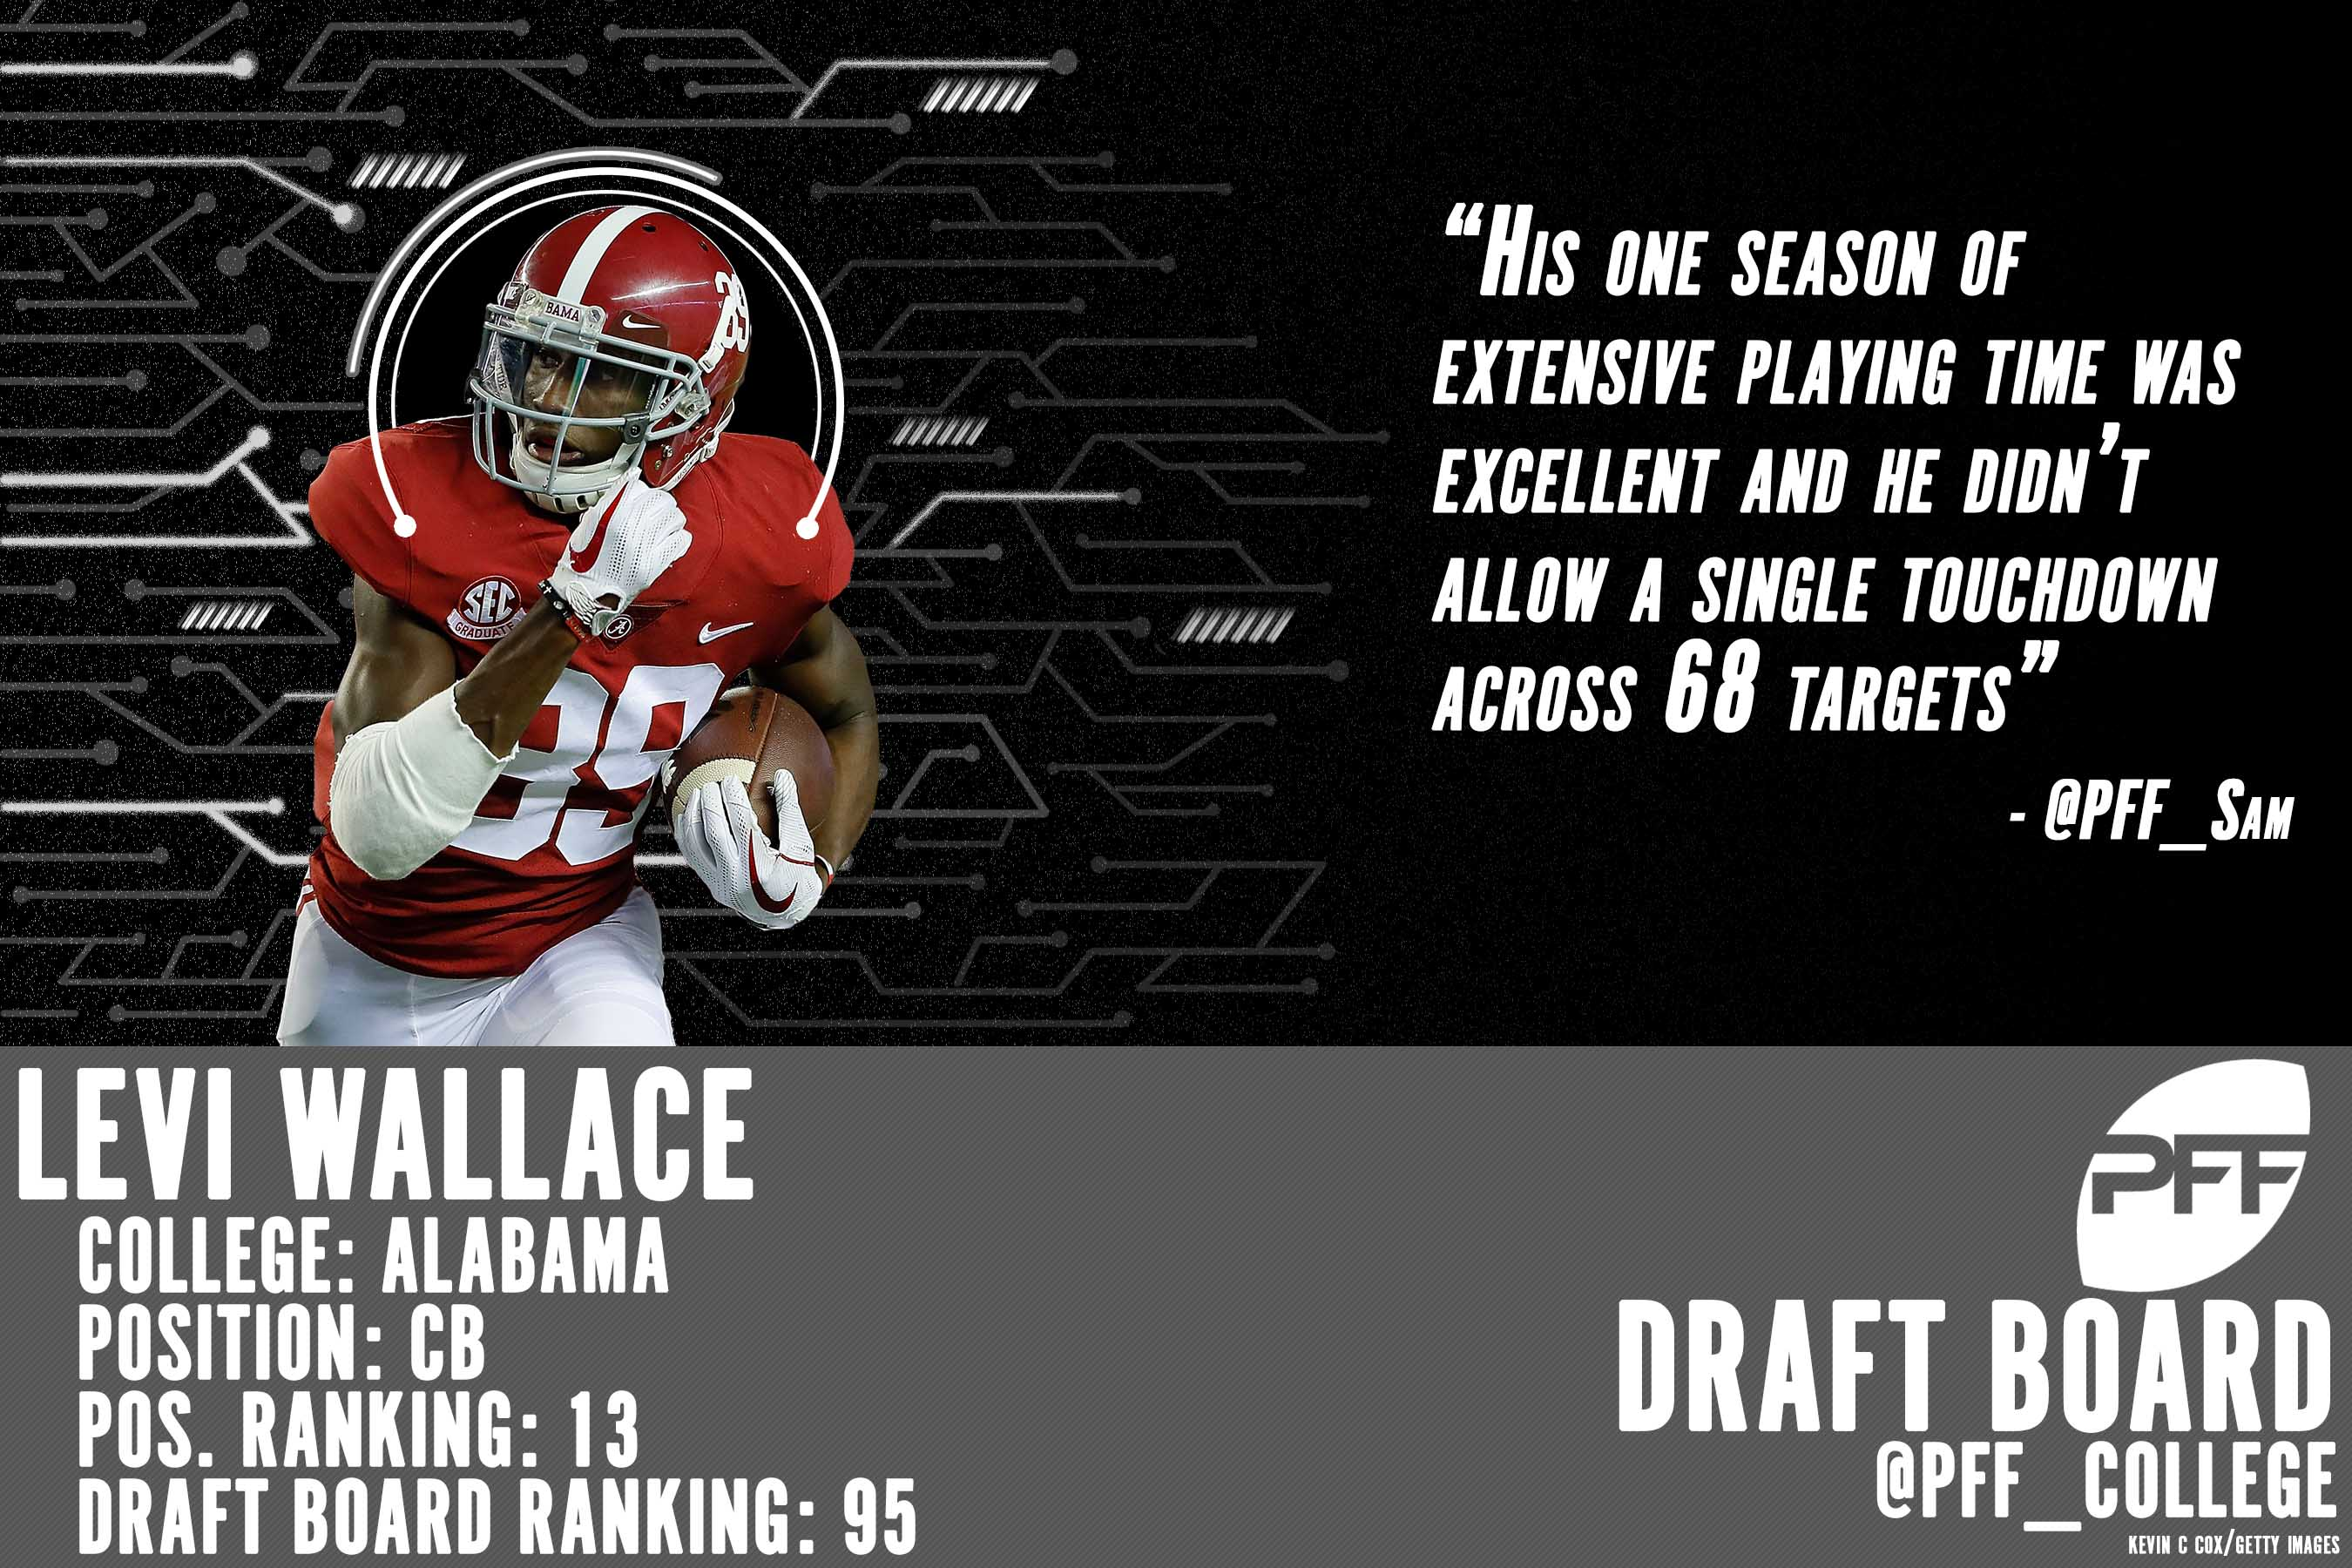 Levi Wallace, 2018 NFL Draft rankings